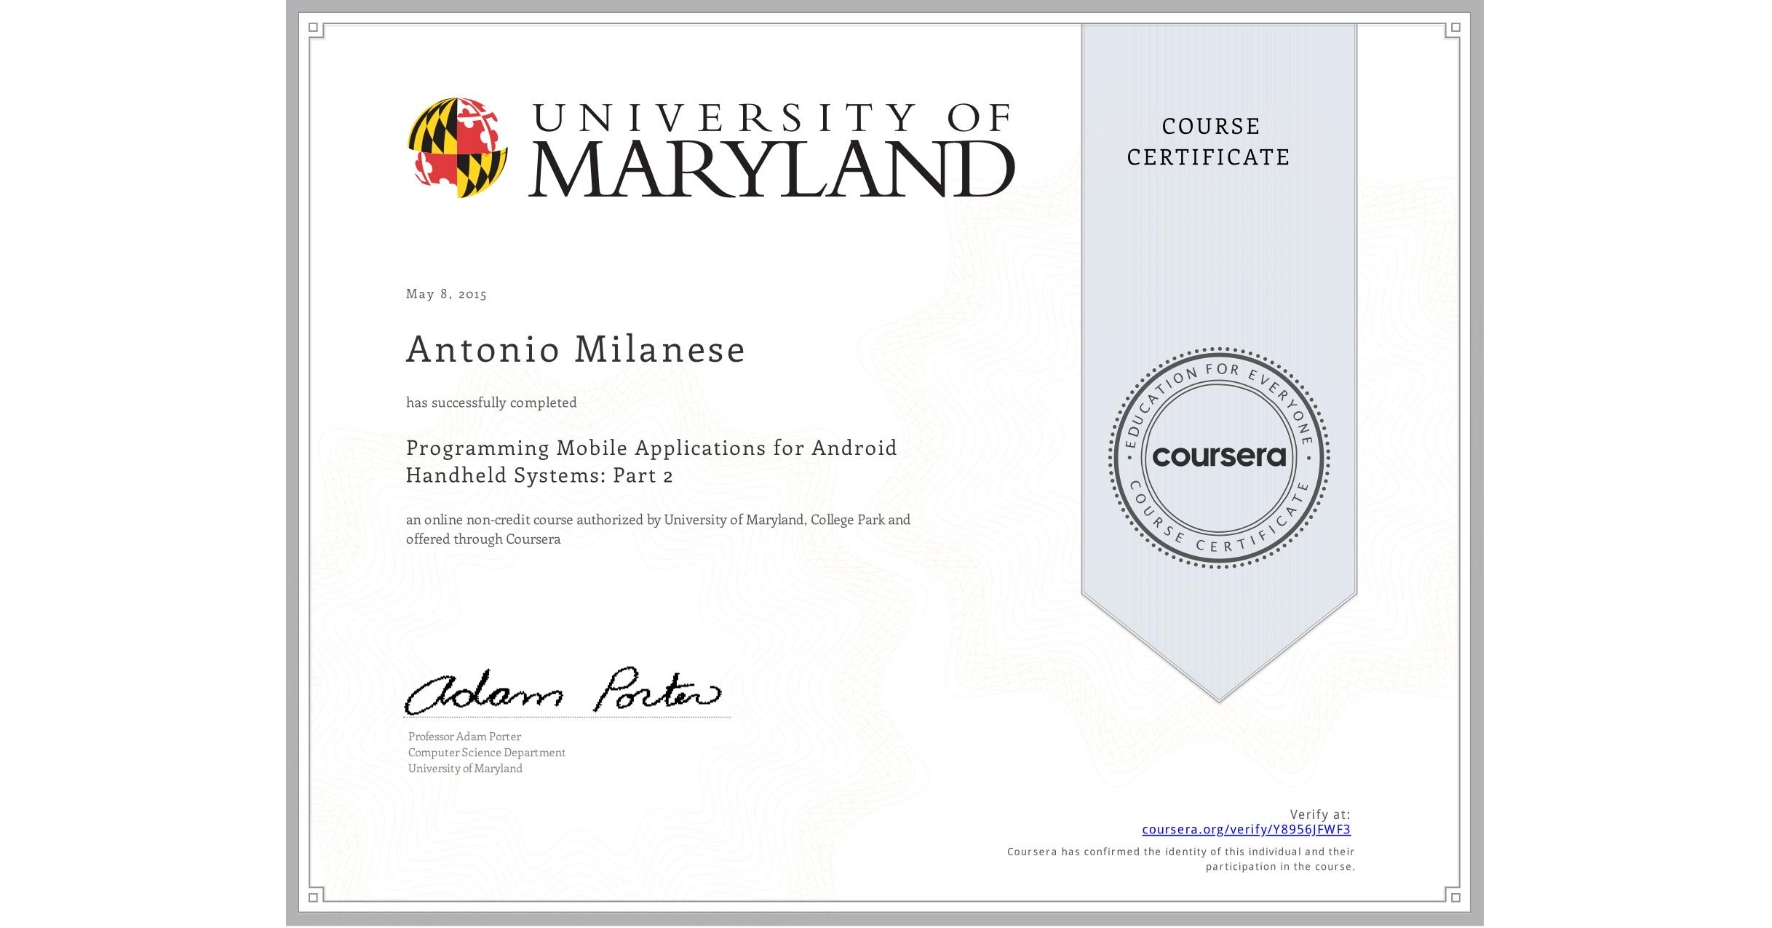 View certificate for Antonio Milanese, Programming Mobile Applications for Android Handheld Systems: Part 2, an online non-credit course authorized by University of Maryland, College Park and offered through Coursera